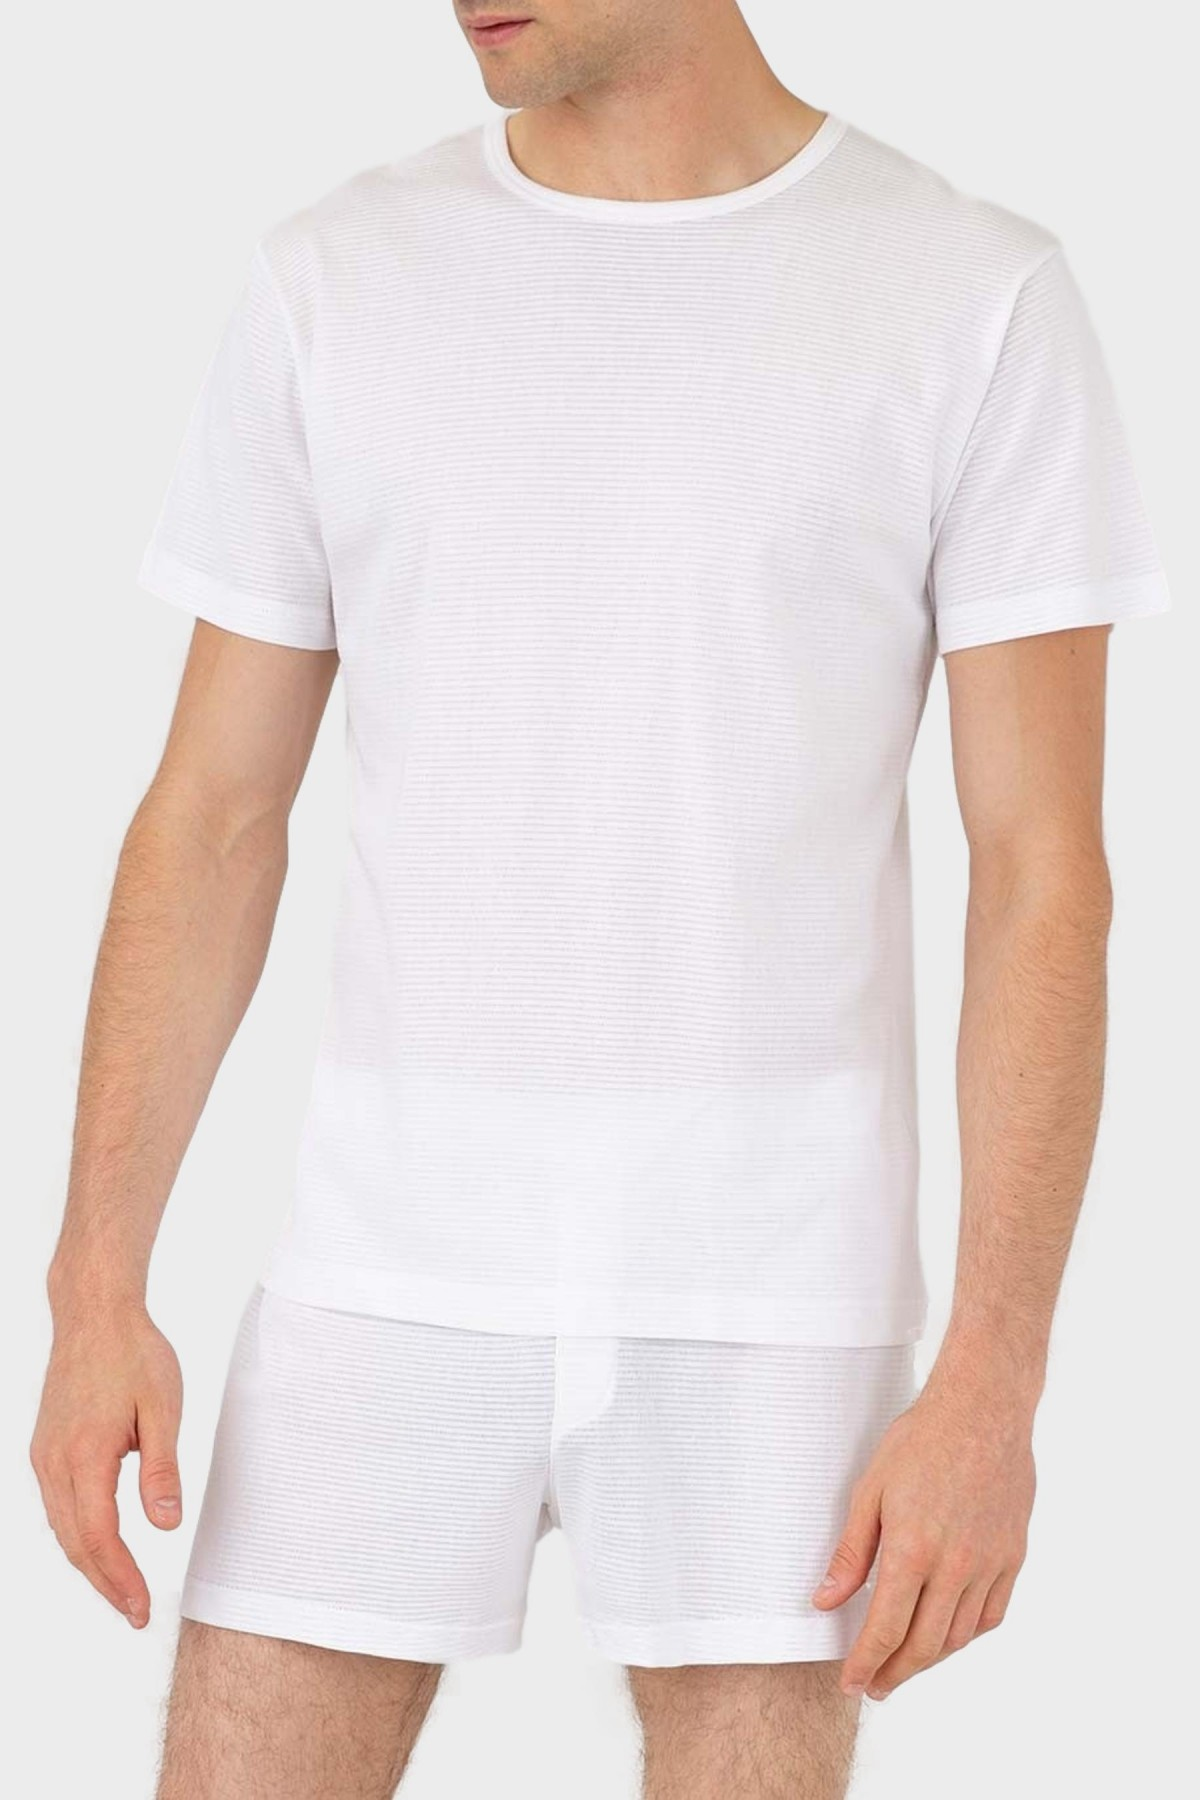 Sunspel Cellular Cotton Crew Neck T-Shirt in White